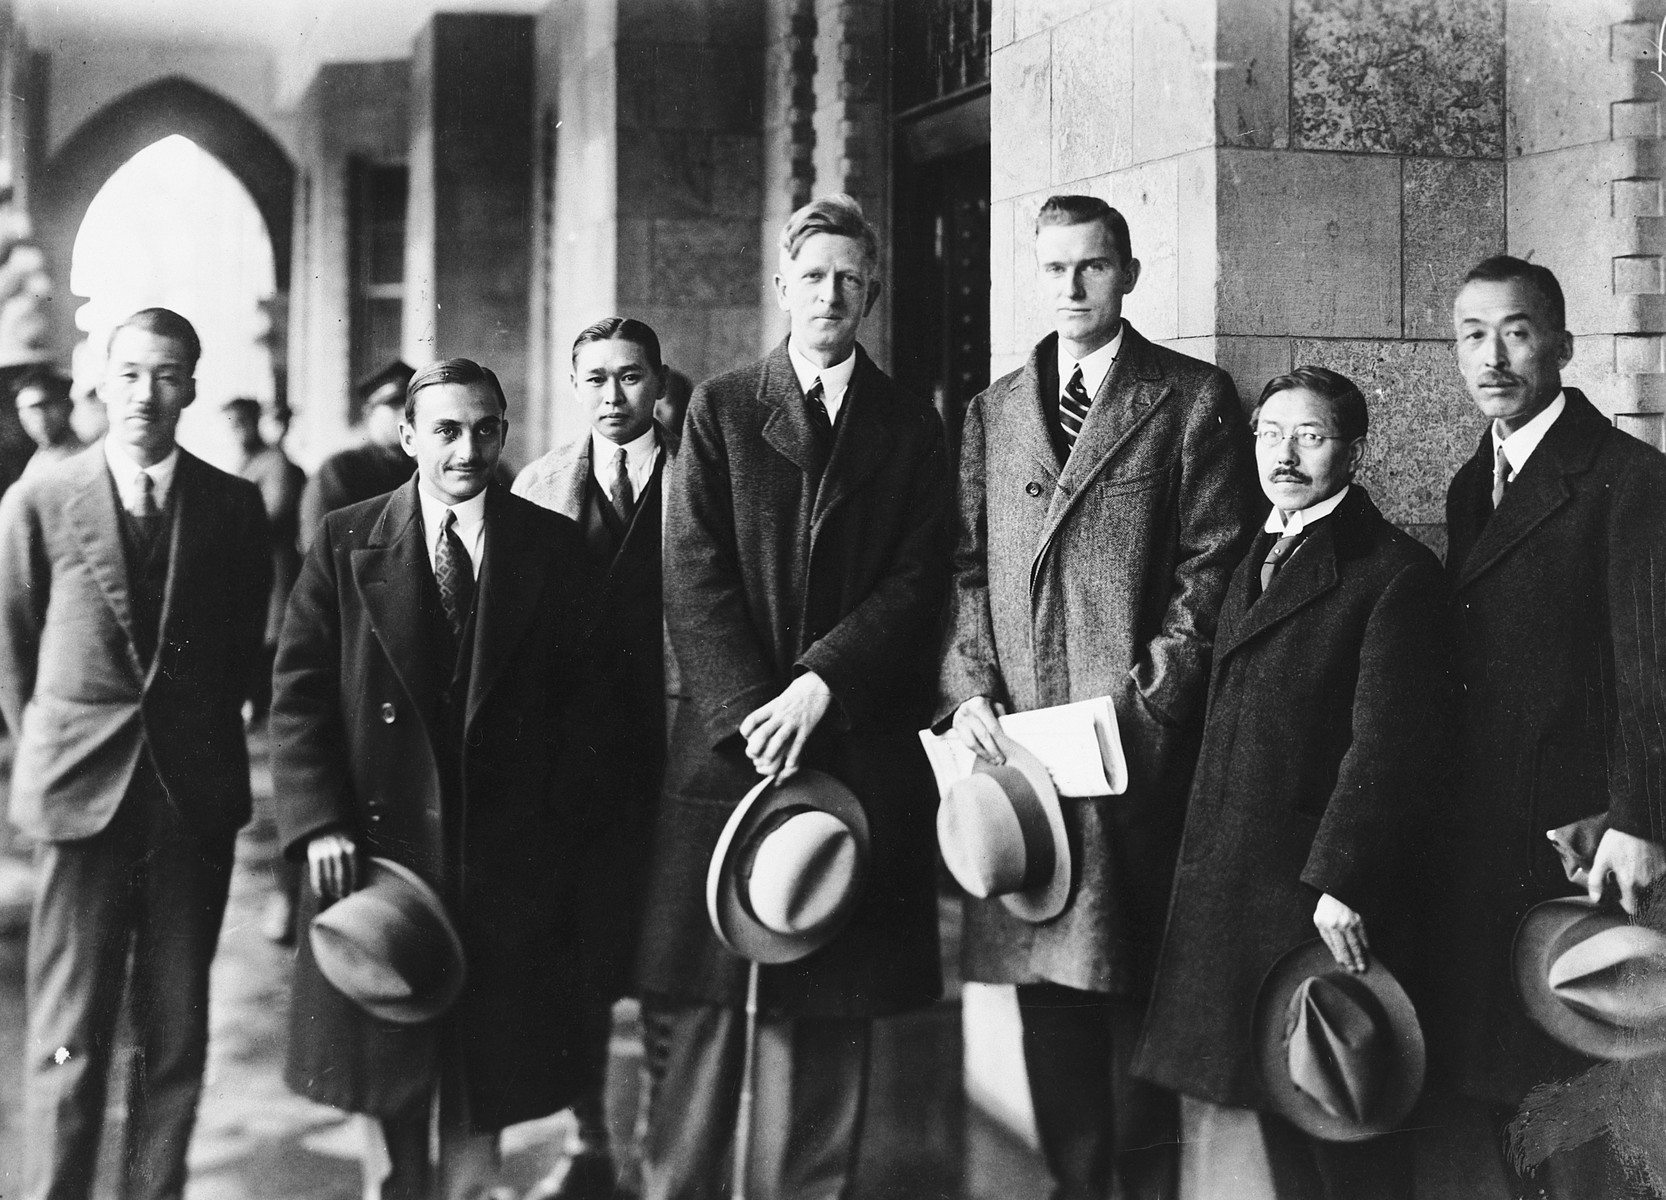 Group portrait of delegates to the Institute of Pacific Relations conference in Kyoto, Japan.  Among those pictured are James G. McDonald (fourth from the right) and John D. Rockefeller III (third from right).